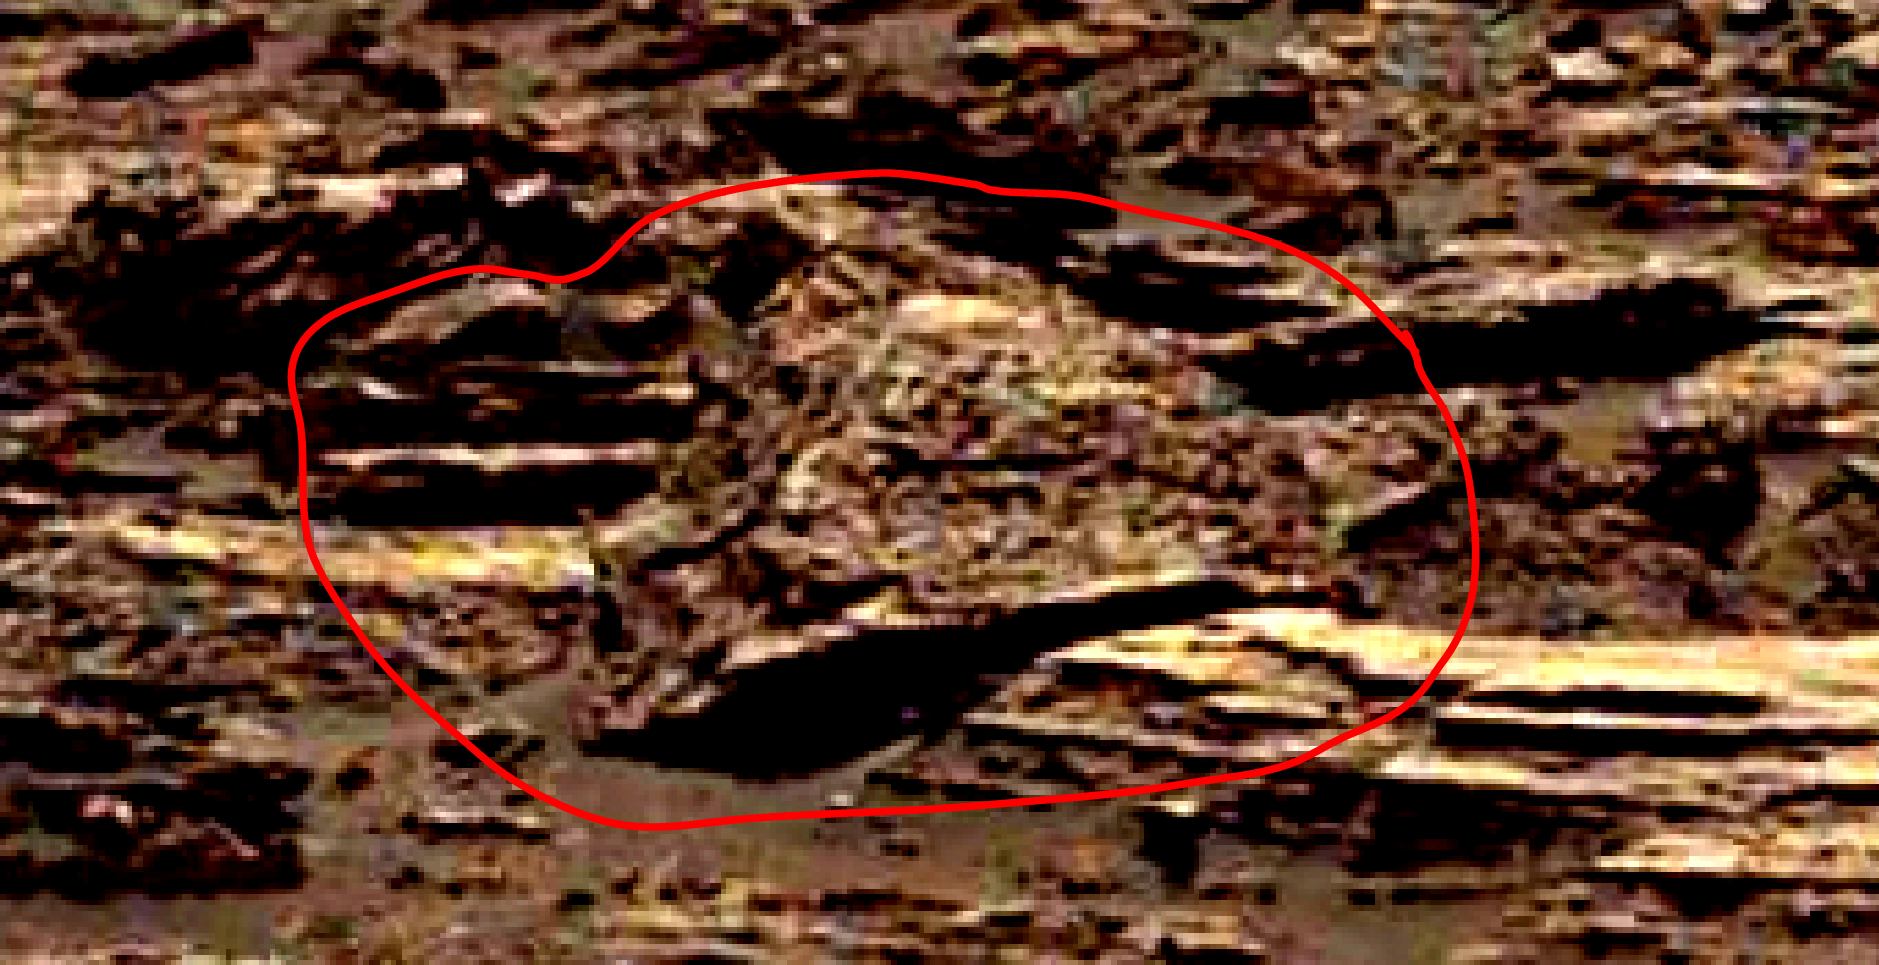 mars-sol-1489-anomaly-artifacts-6-was-life-on-mars